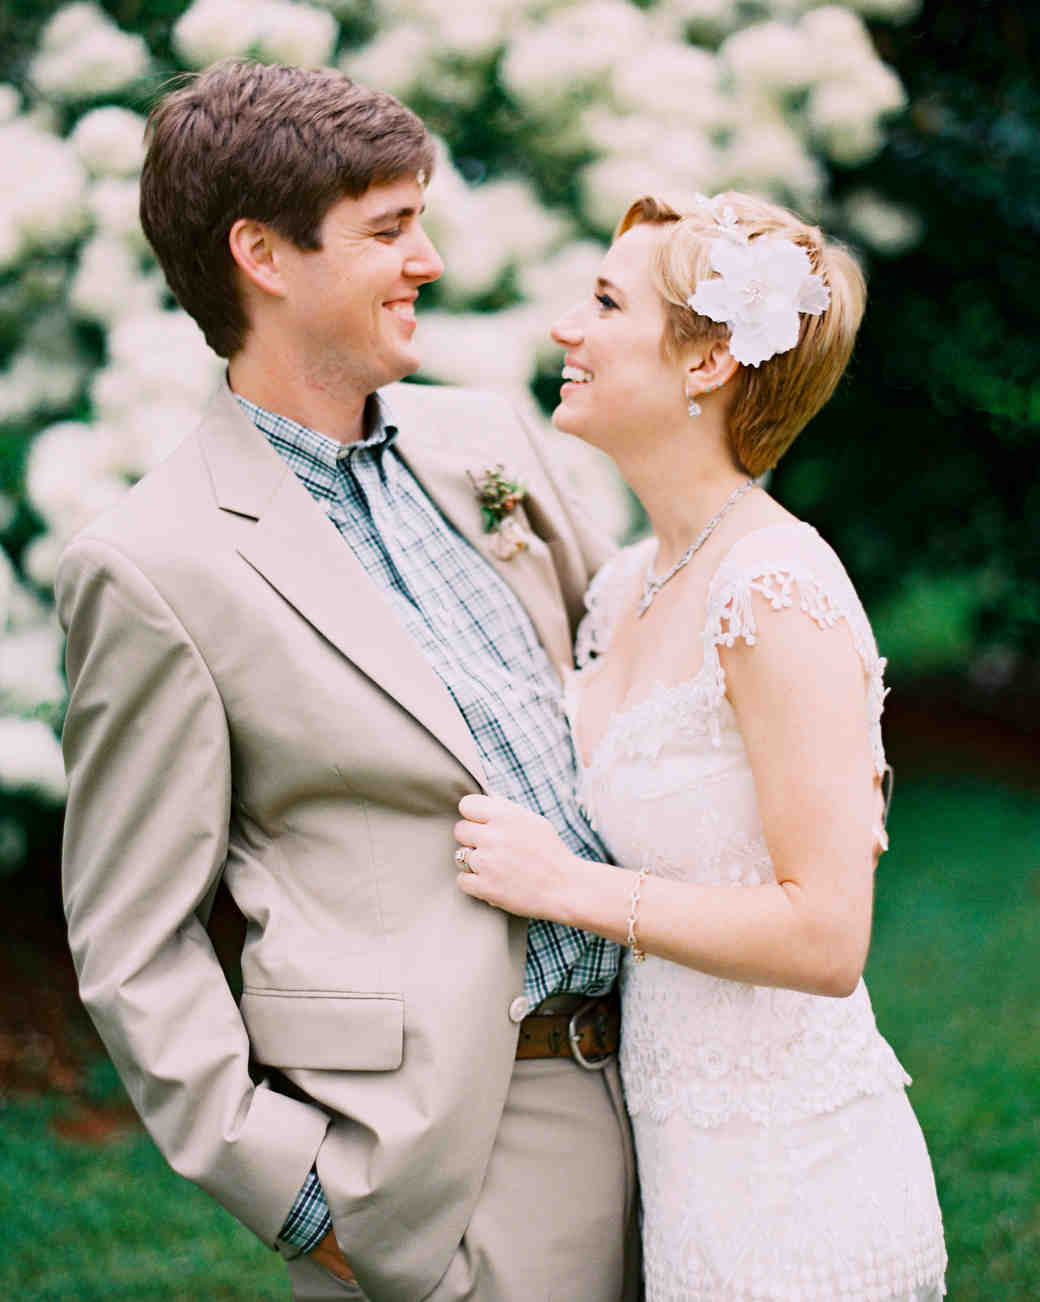 Chic Wedding Hairstyles For Short Hair Martha Stewart Weddings